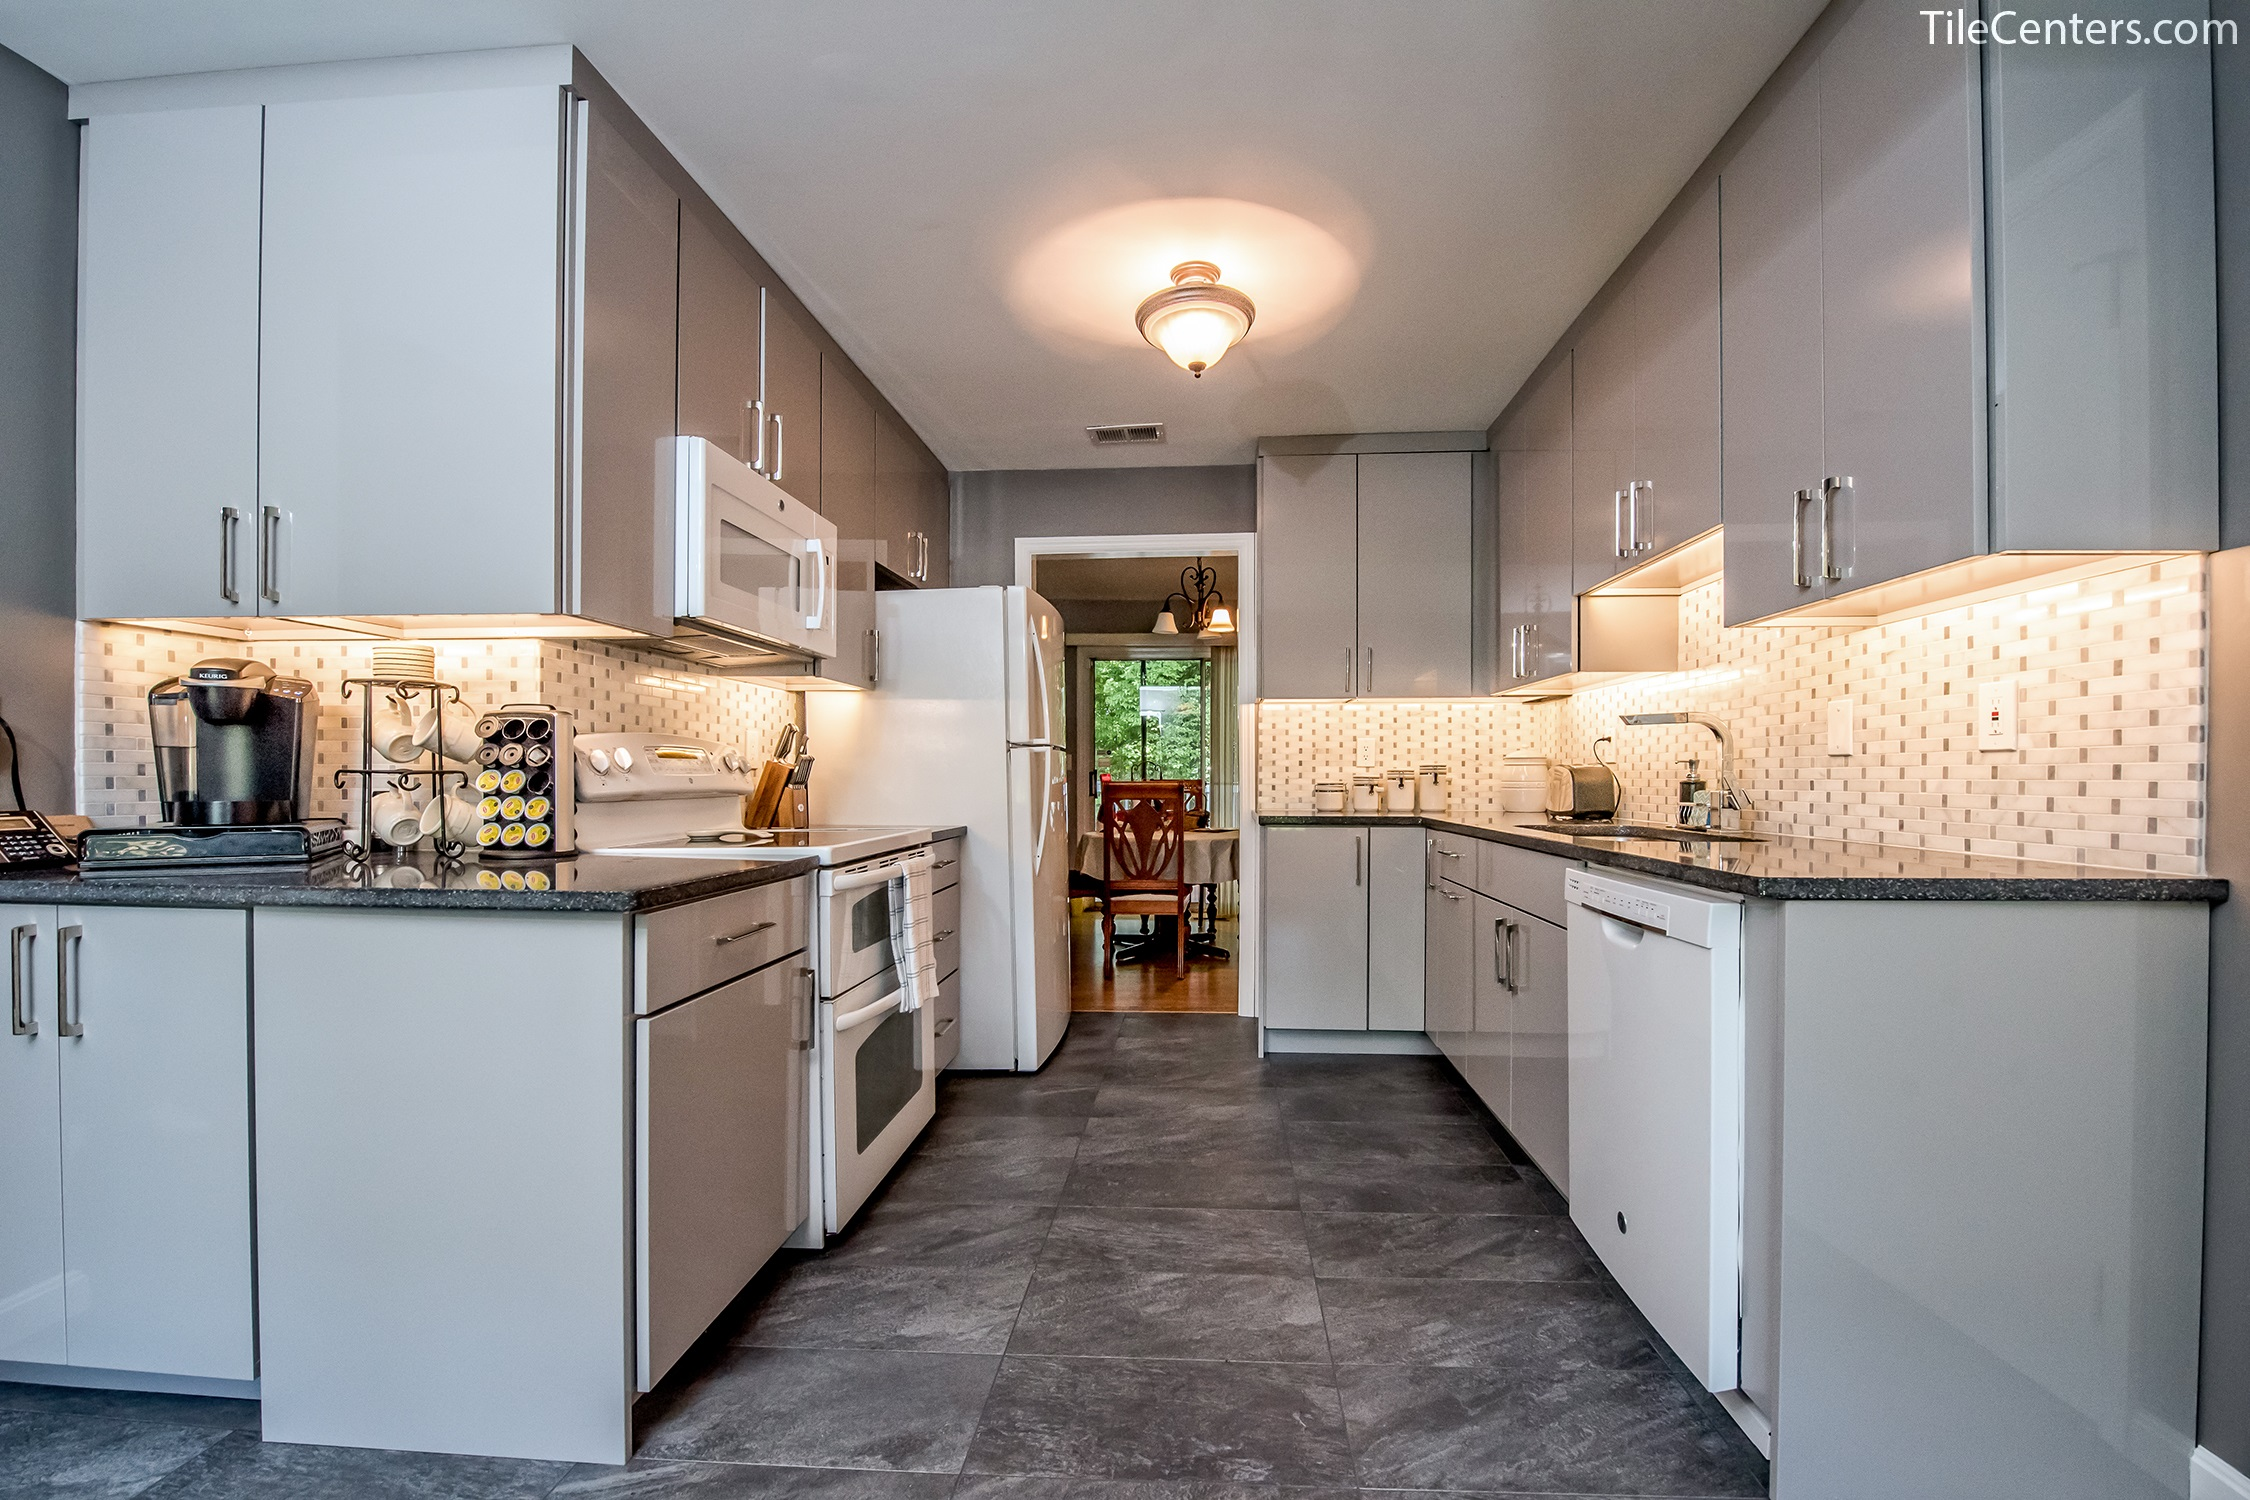 kitchen remodeling silver spring md bookshelf white and grey remodel maximizing countertop space